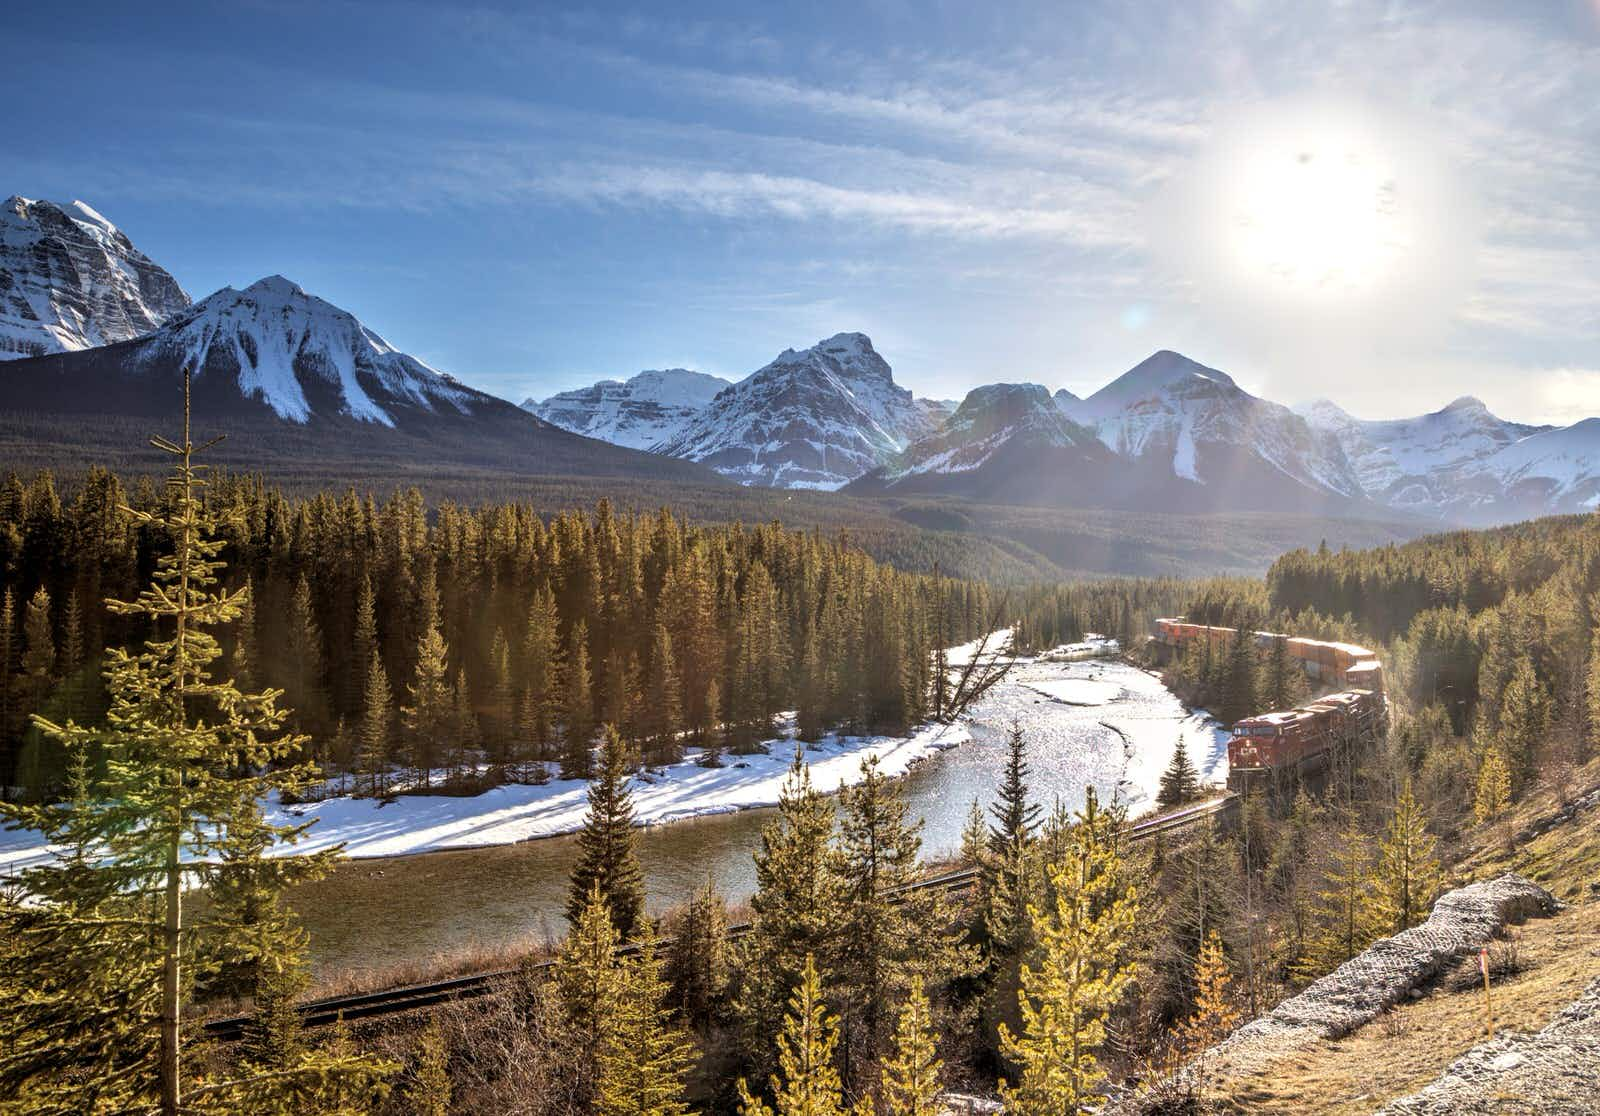 A train enters the famous Morants Curve with its stunning backdrop of the mountains around Lake Louise